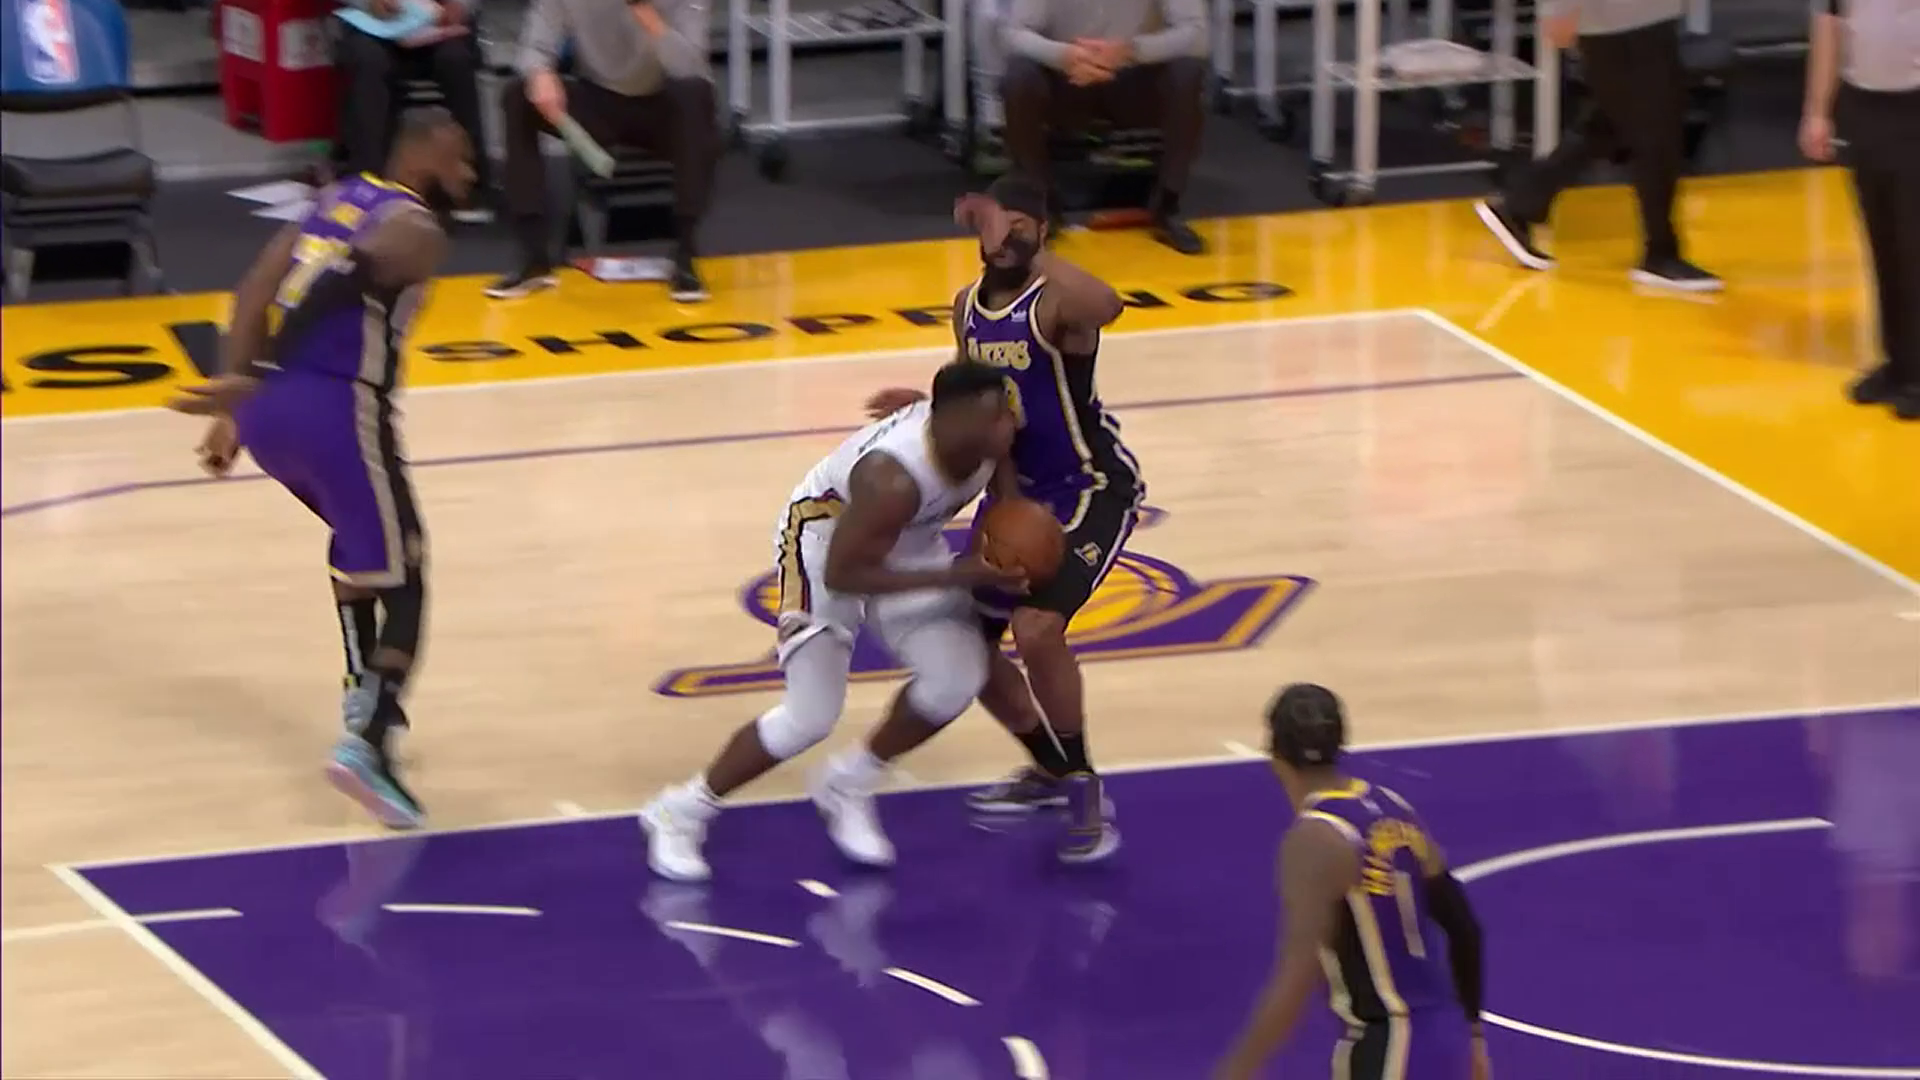 Pelicans-Lakers Highlights: Zion Williamson scores a team-high 21 points